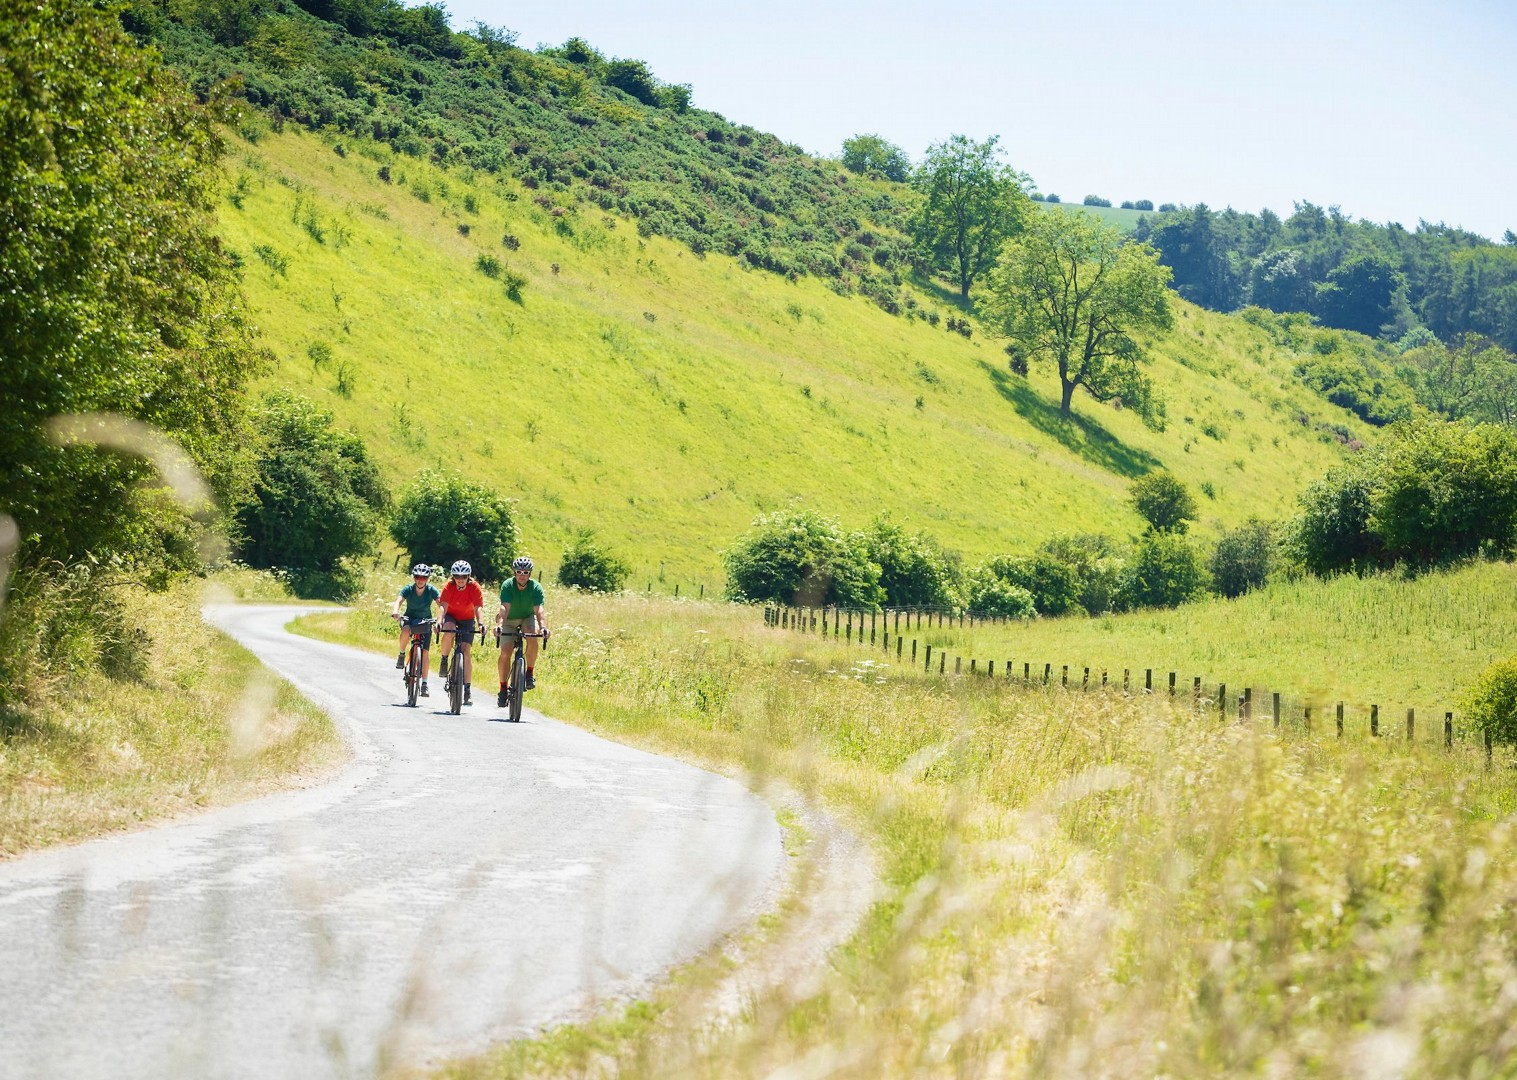 rolling-hills-hidden-valleys-yorkshire-wolds-cycling-holiday.jpg - NEW! UK - Yorkshire Wolds - Leisure Cycling